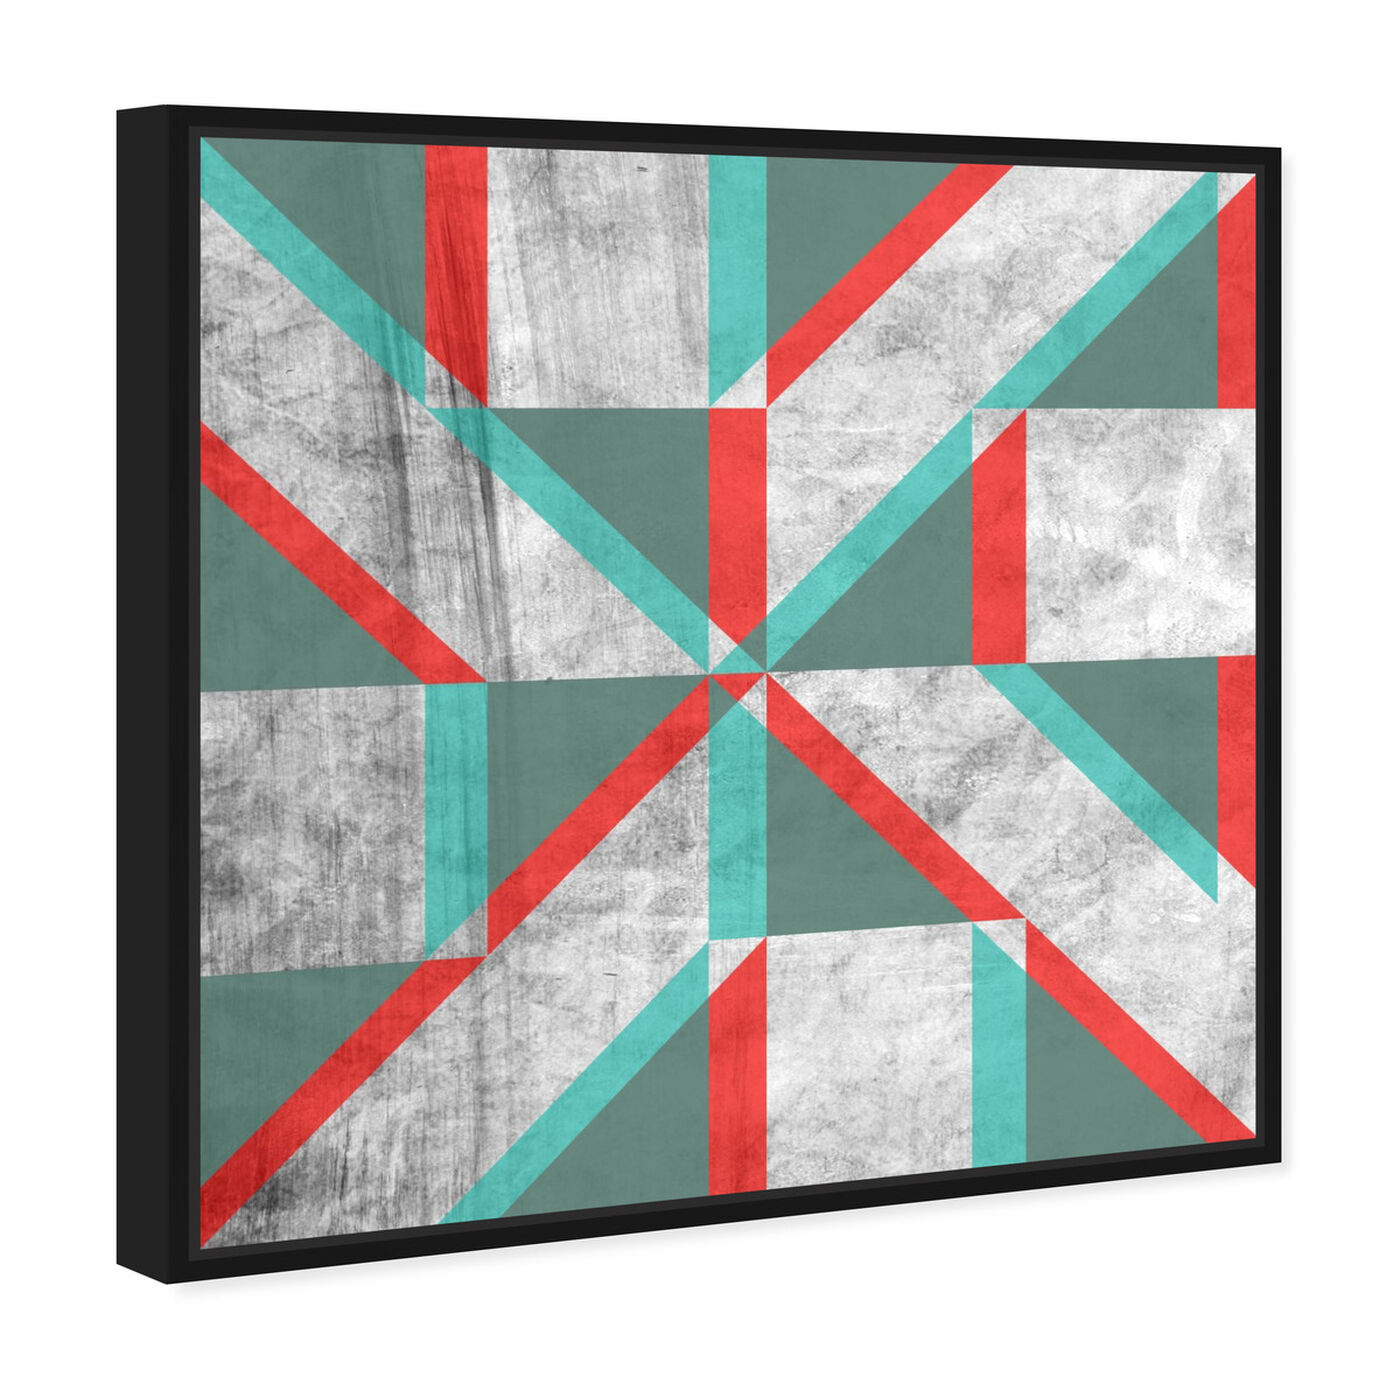 Angled view of Falling Shape featuring abstract and geometric art.